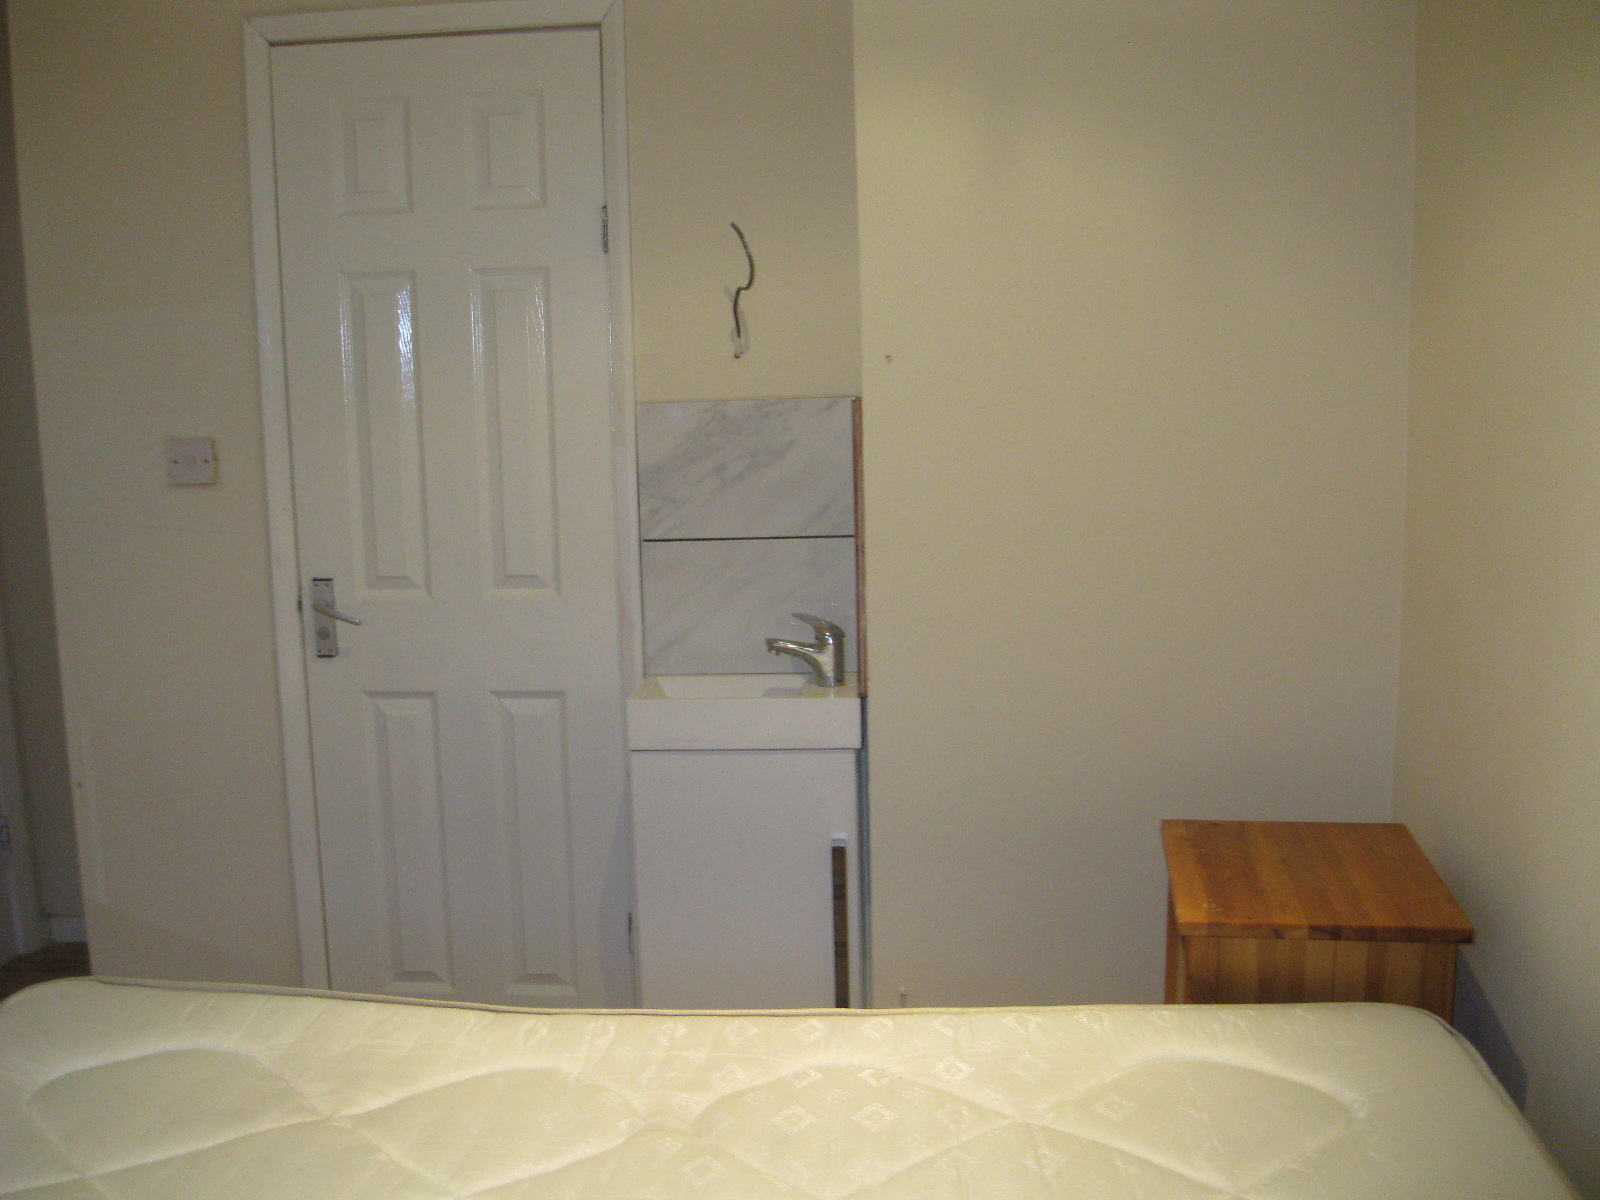 1 room in Chiswick Riverside, London, W44QQ RoomsLocal image